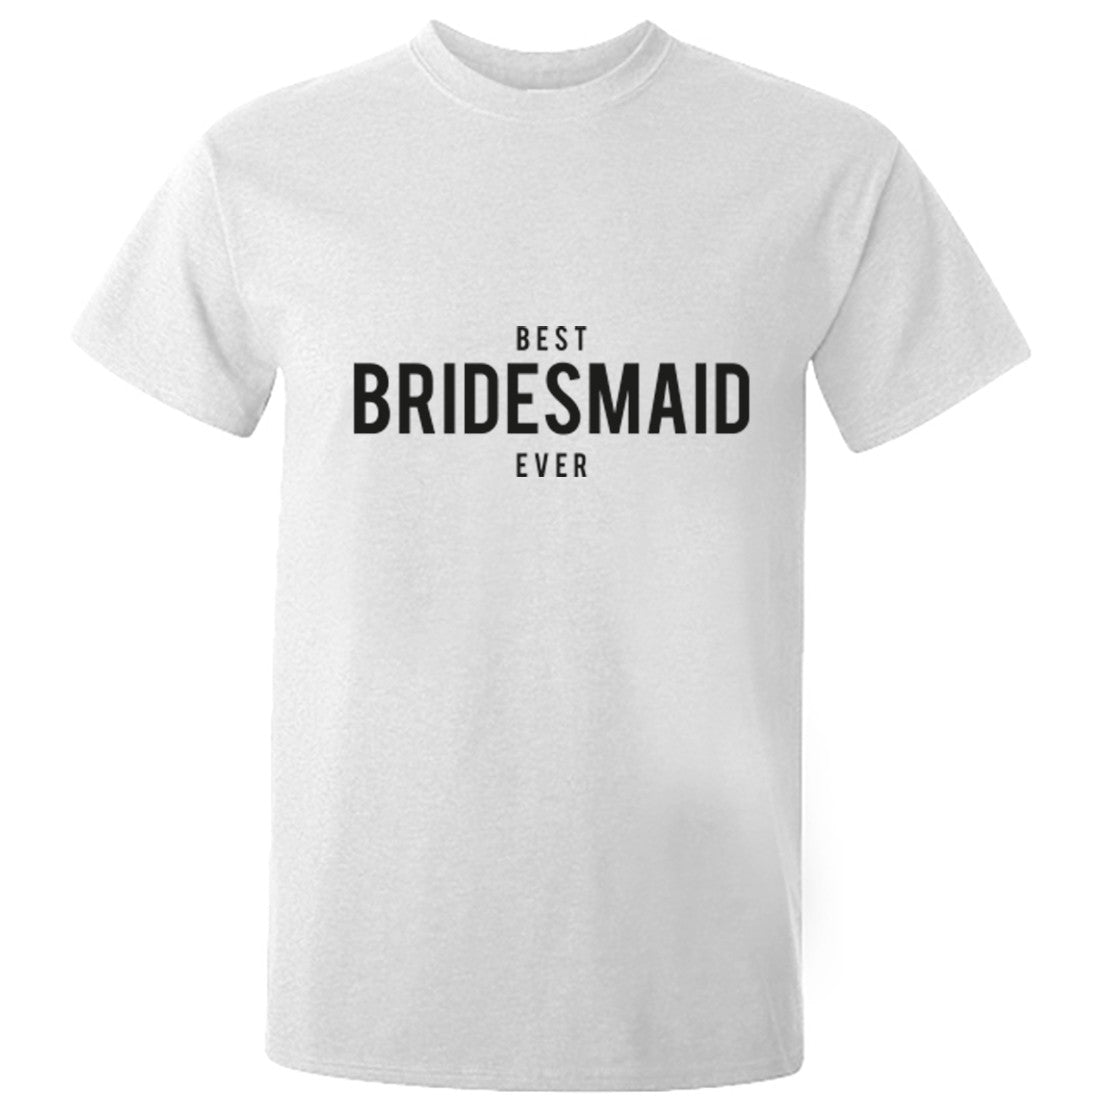 Best Bridesmaid Ever Unisex Fit T-Shirt K1486